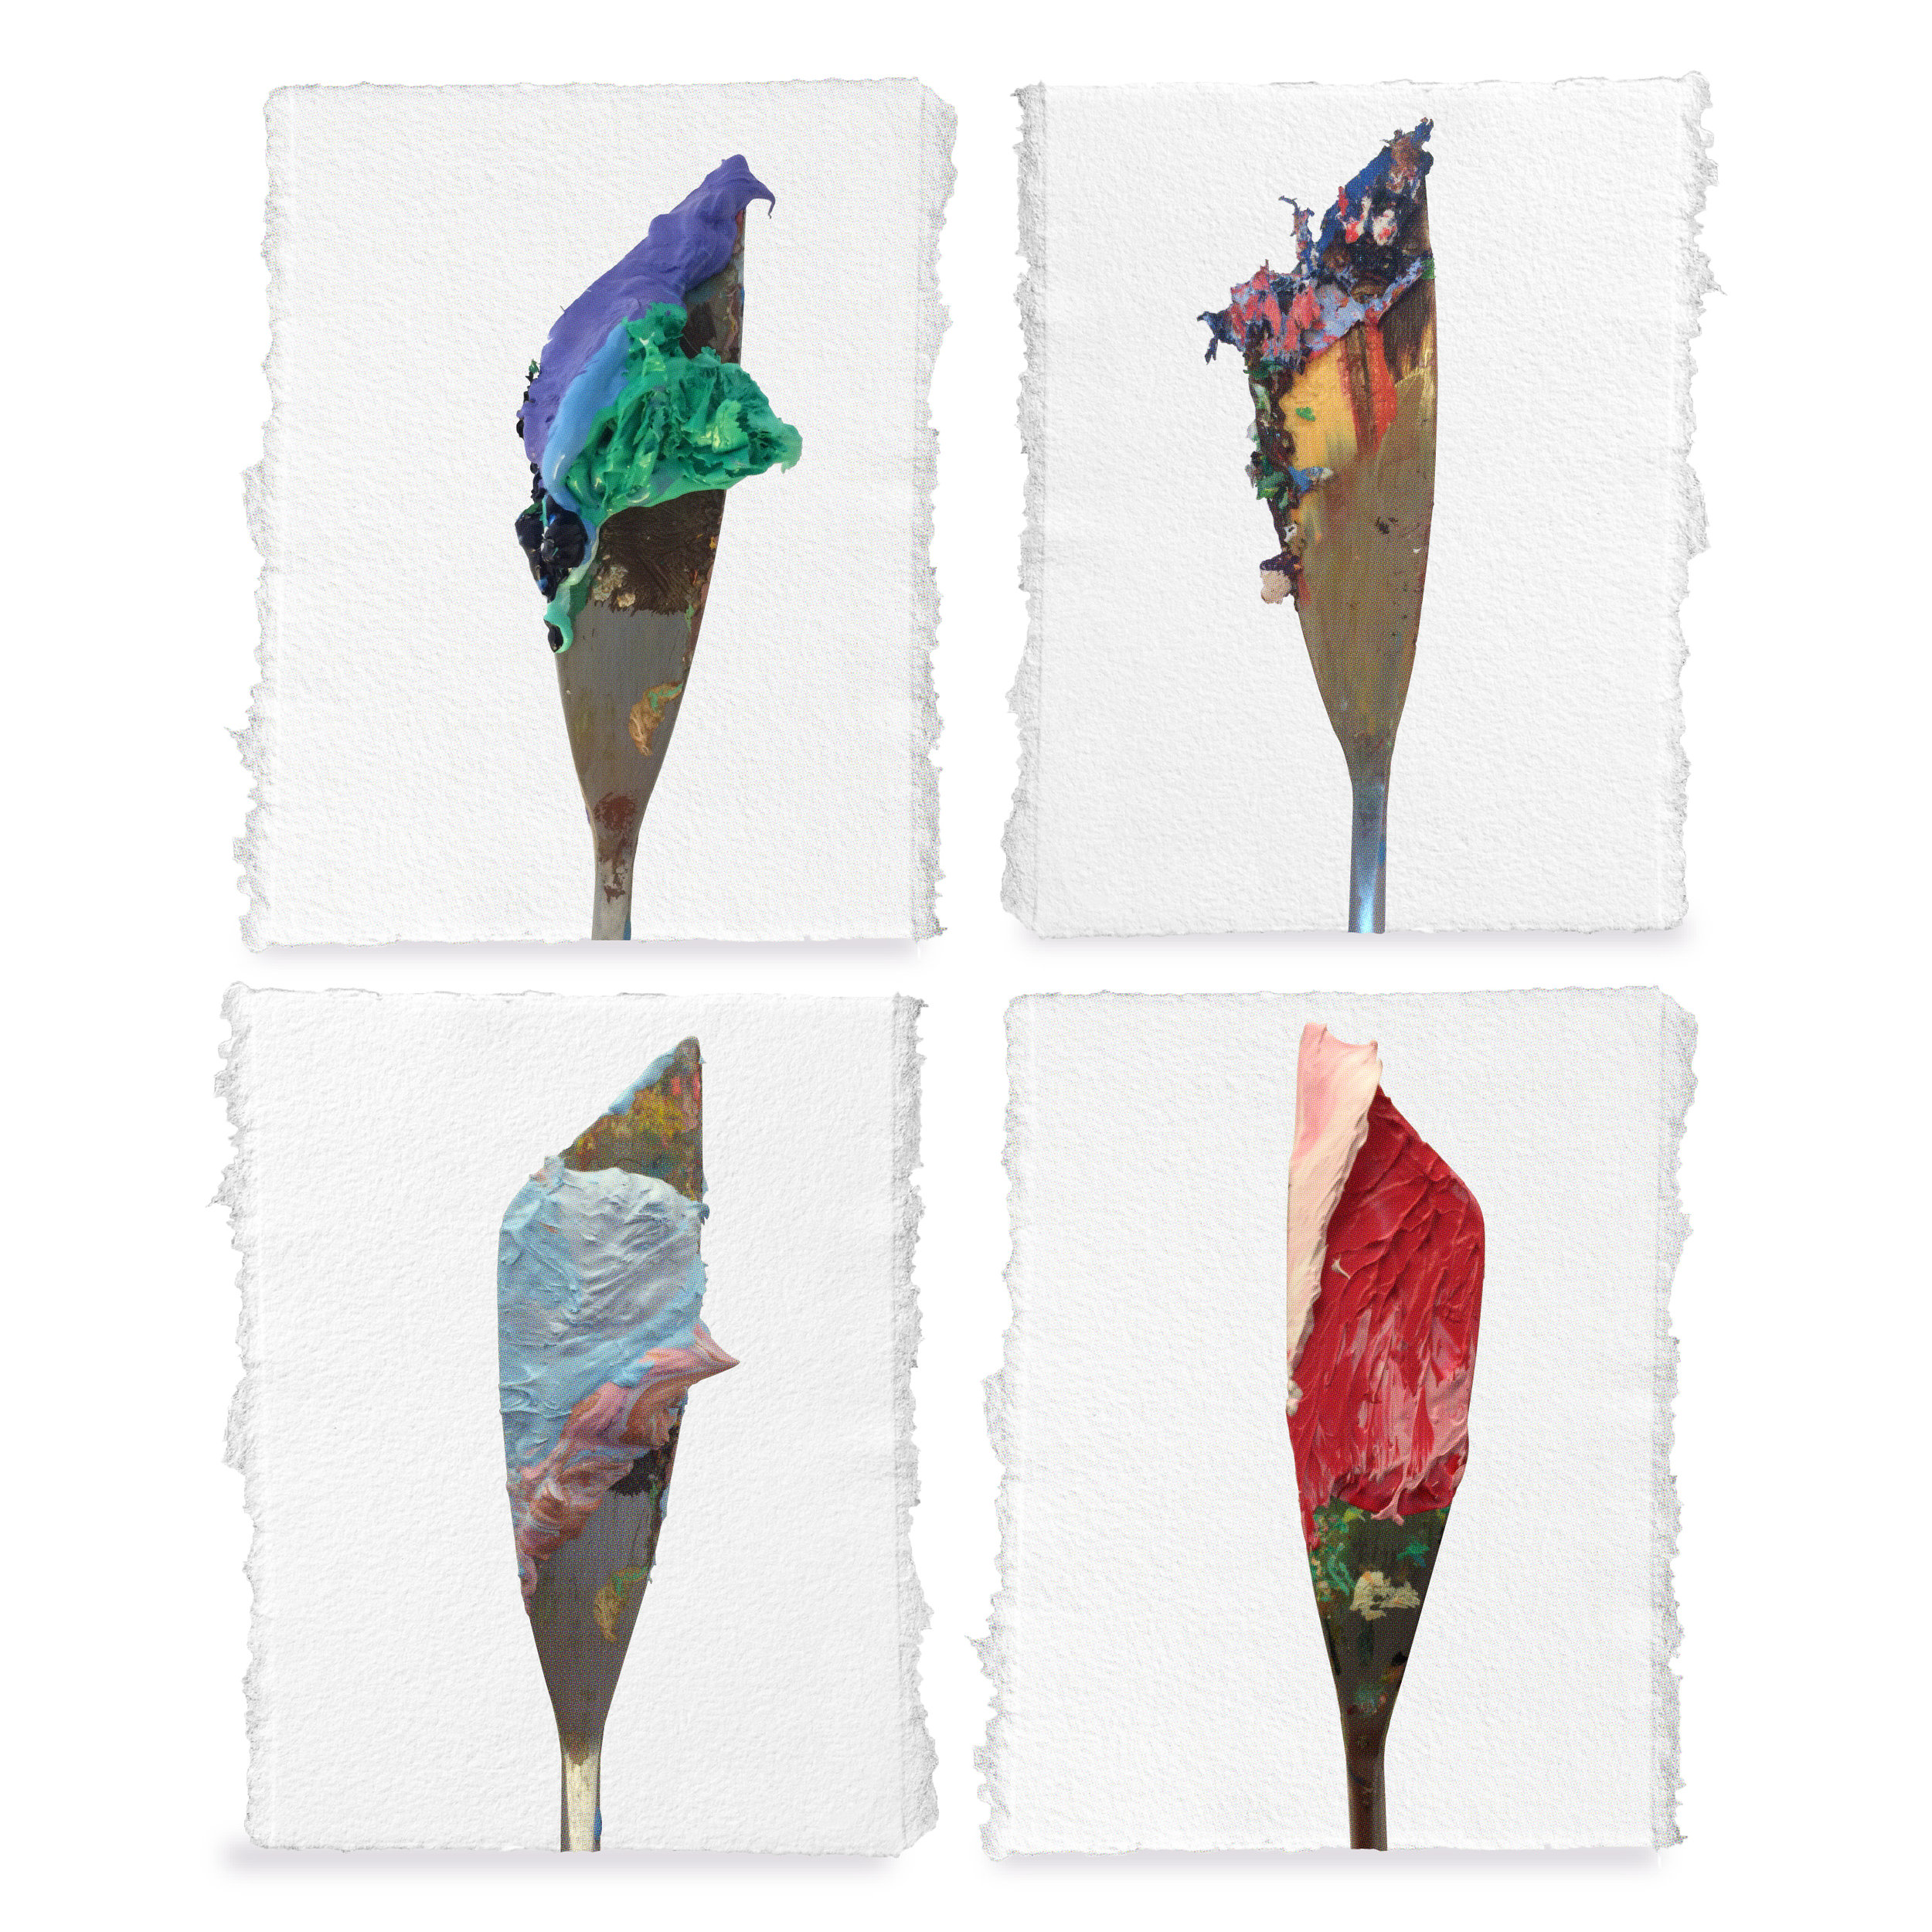 Colour.Pops - by Bradley E. RobinsonAvailable for small to large print shows or as large scale palette knife sculpture installation.